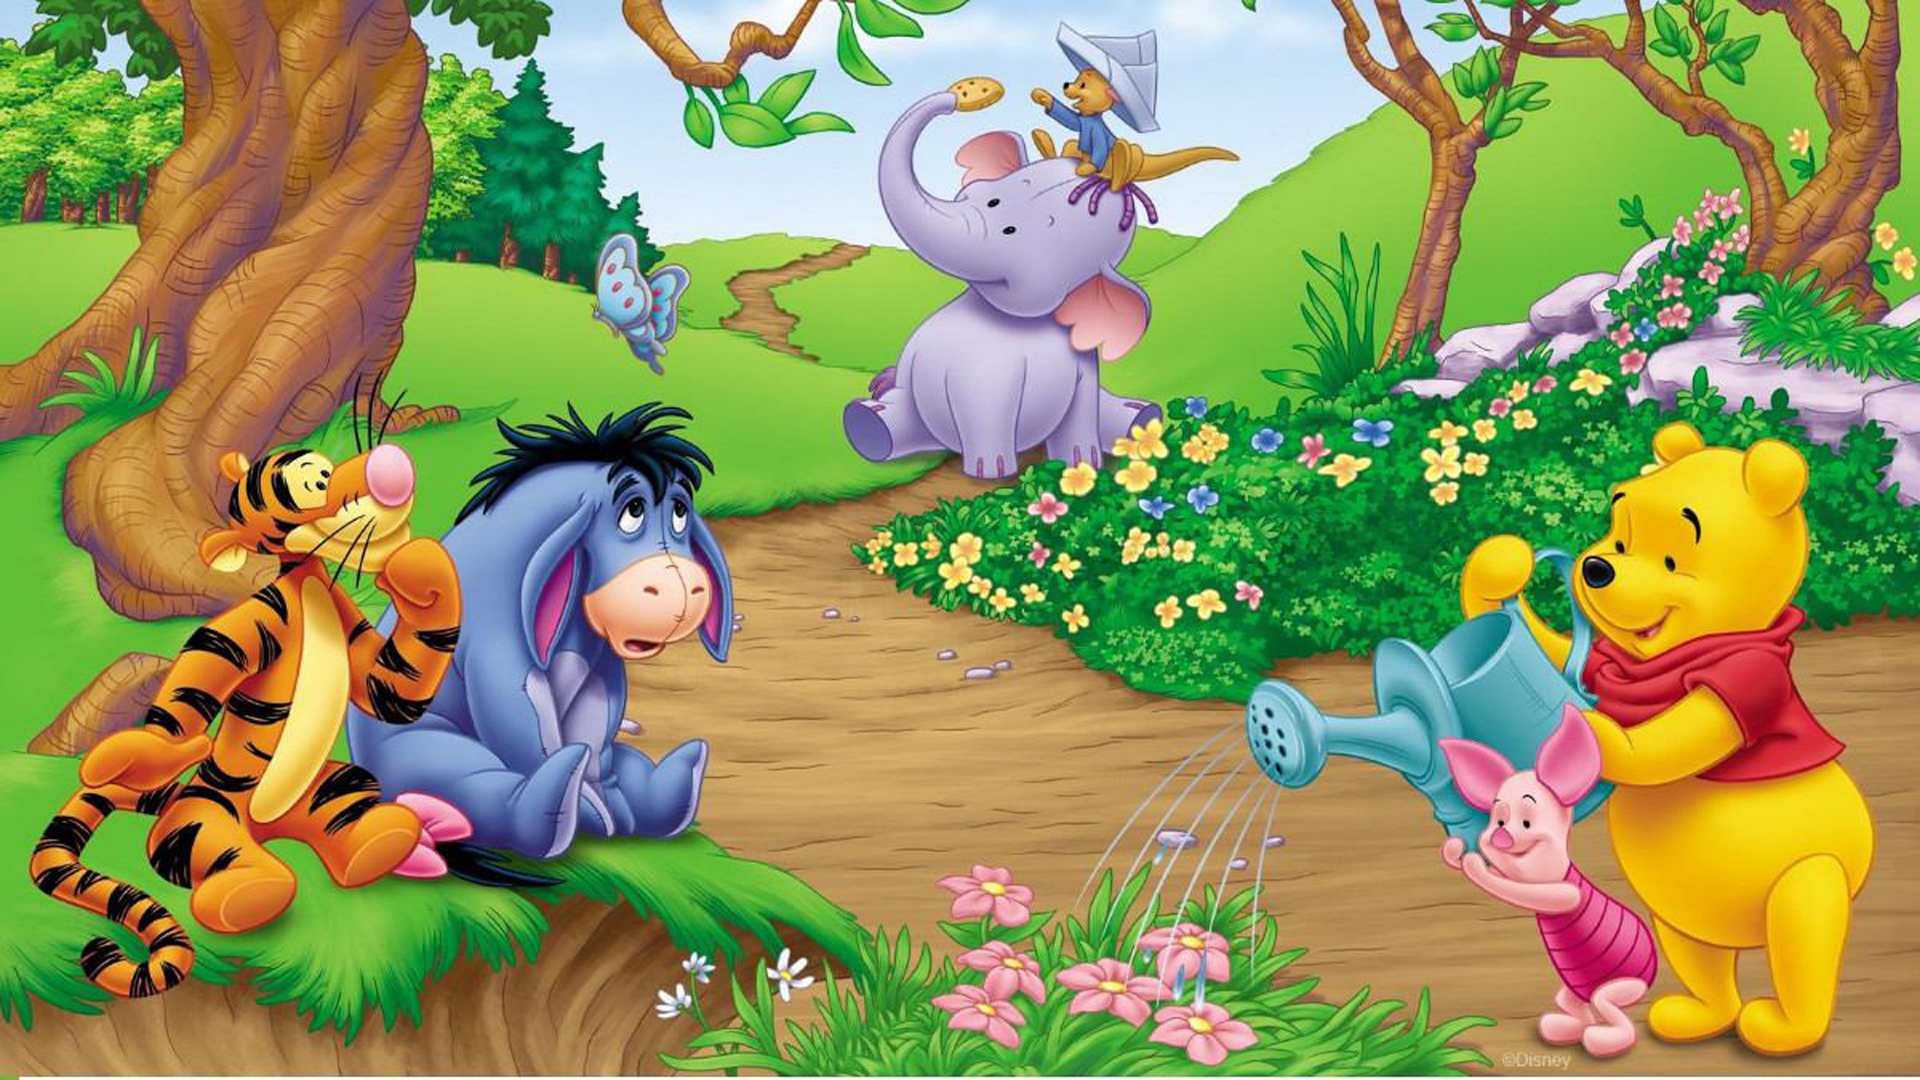 Wallpaper Hd For Mobile Free Download Animated Garden Of Winnie The Pooh Hd Wallpaper For Desktop